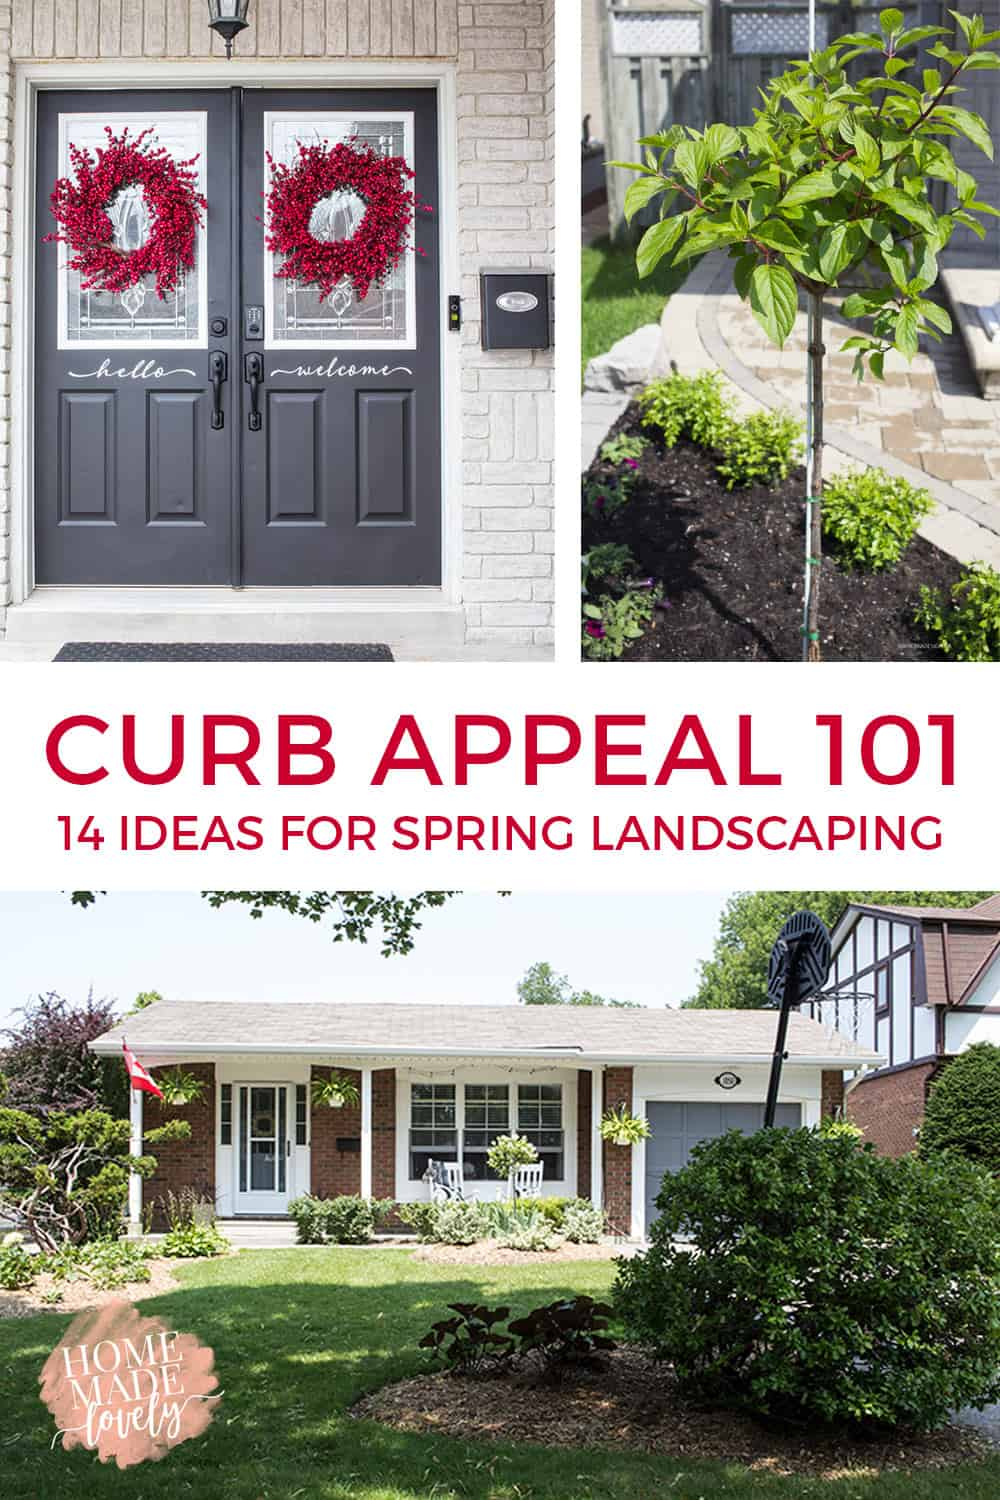 Whether you're preparing to sell your house, or you just want to improve your home's curb appeal, here's our Curb Appeal 101, 14 ideas for Spring landscaping!